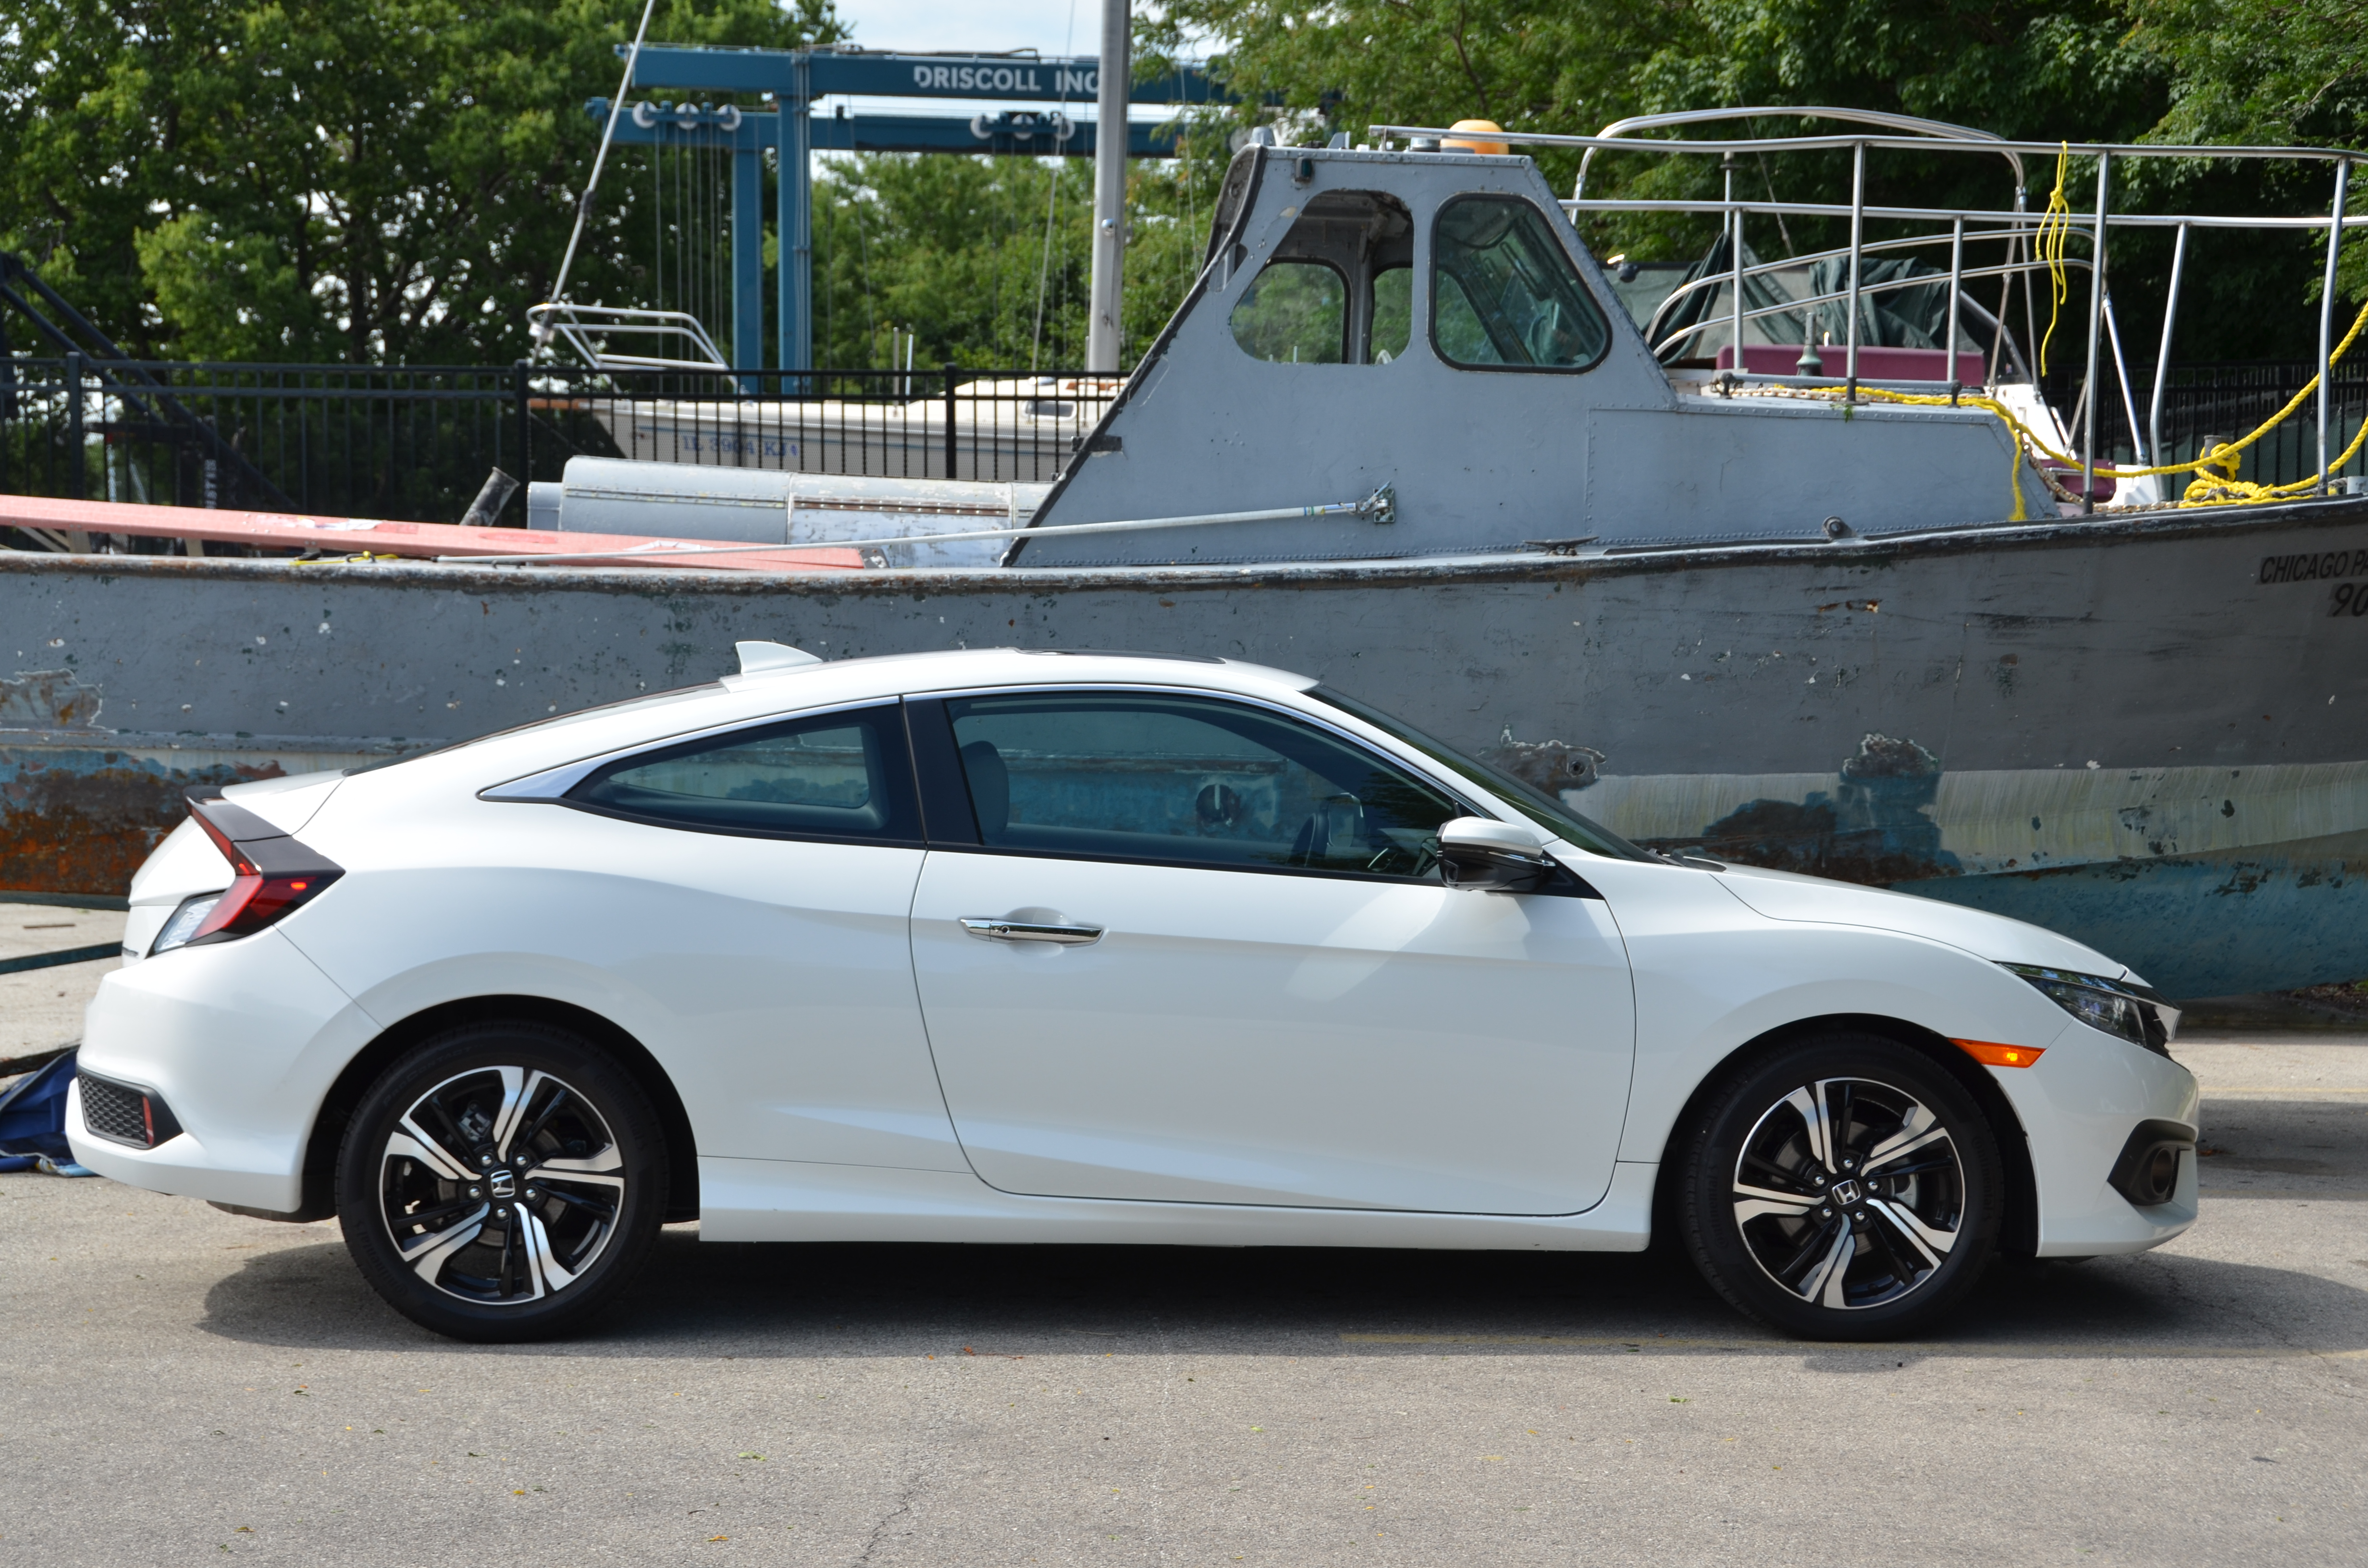 Hondau0027s Civic Is All New For 2016 And Was Named The North American Car Of  The Year. I Recently Test Drove The Civic 2 Door Coupe With The 174 HP  Turbo ...